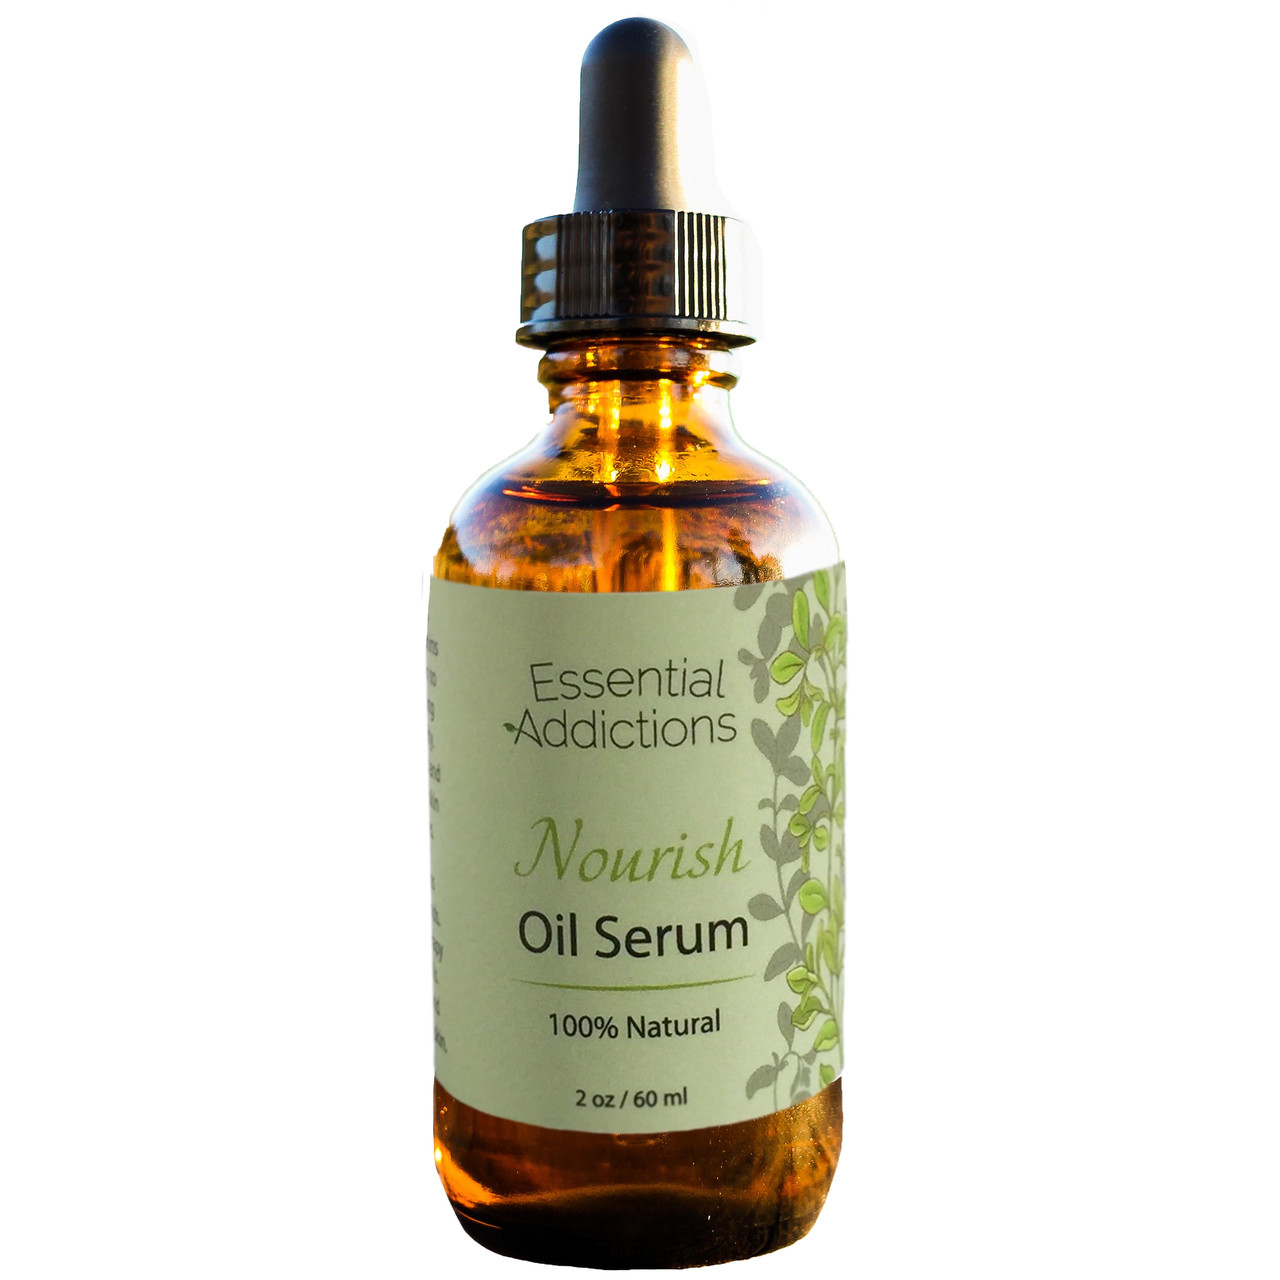 Nourish Oil Serum (for dry skin)